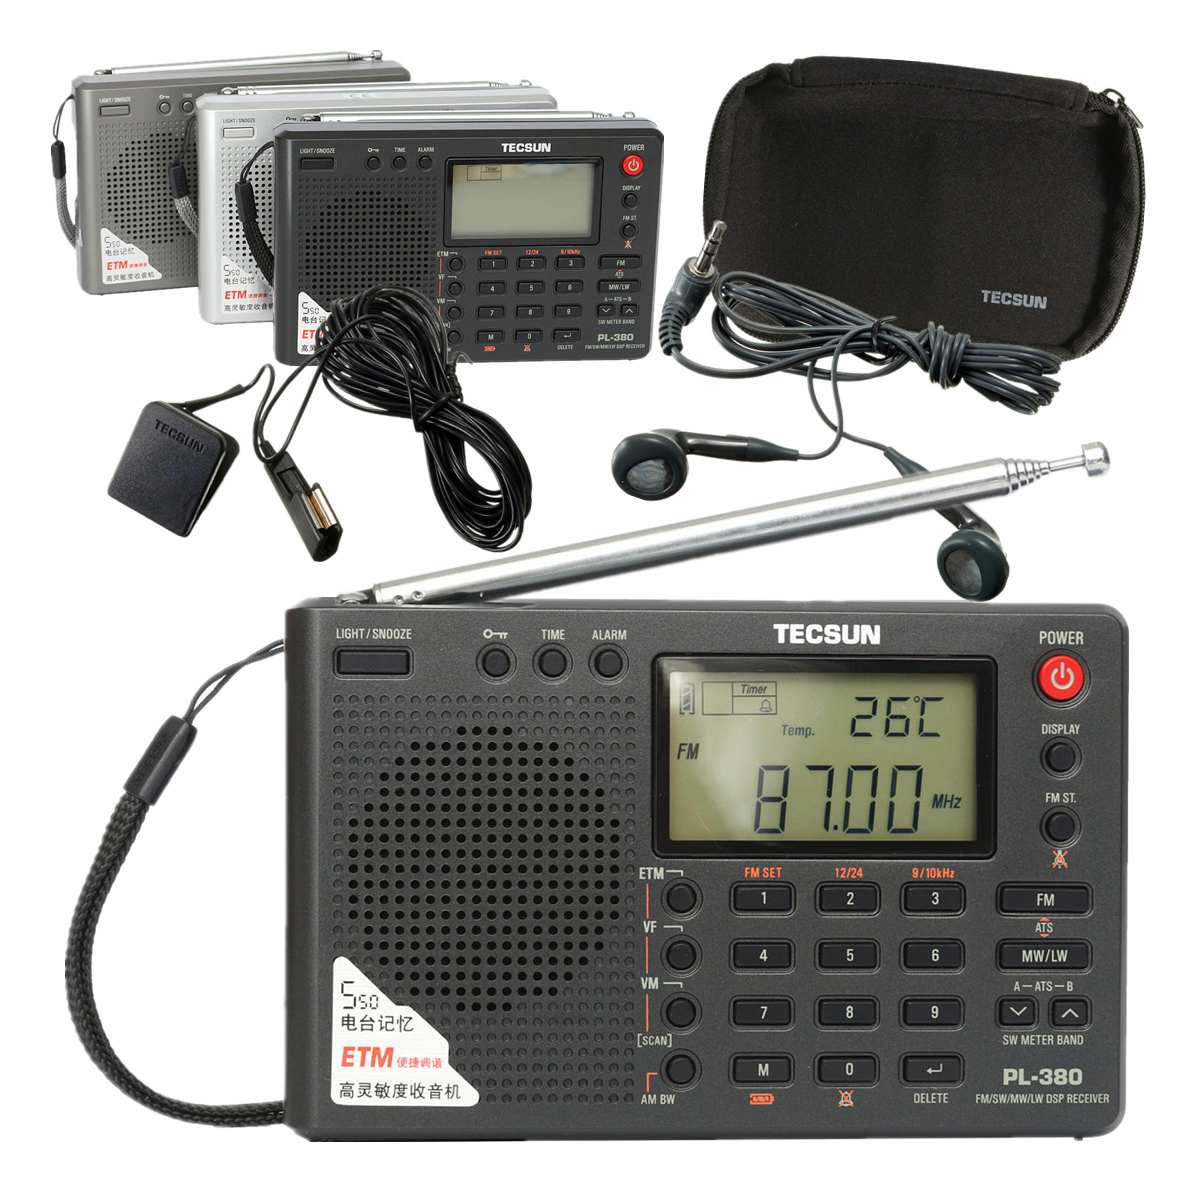 Silver Gray Black TECSUN PL-380 DSP PLL FM MW SW LW Digital Stereo Radio World-Band Receiver New 7 Tuning Mode Selectable hot sale tecsun pl 600 pl600 portable fm radio fm stereo am fm sw mw pll all band receiver digital radio tecsun free shipping